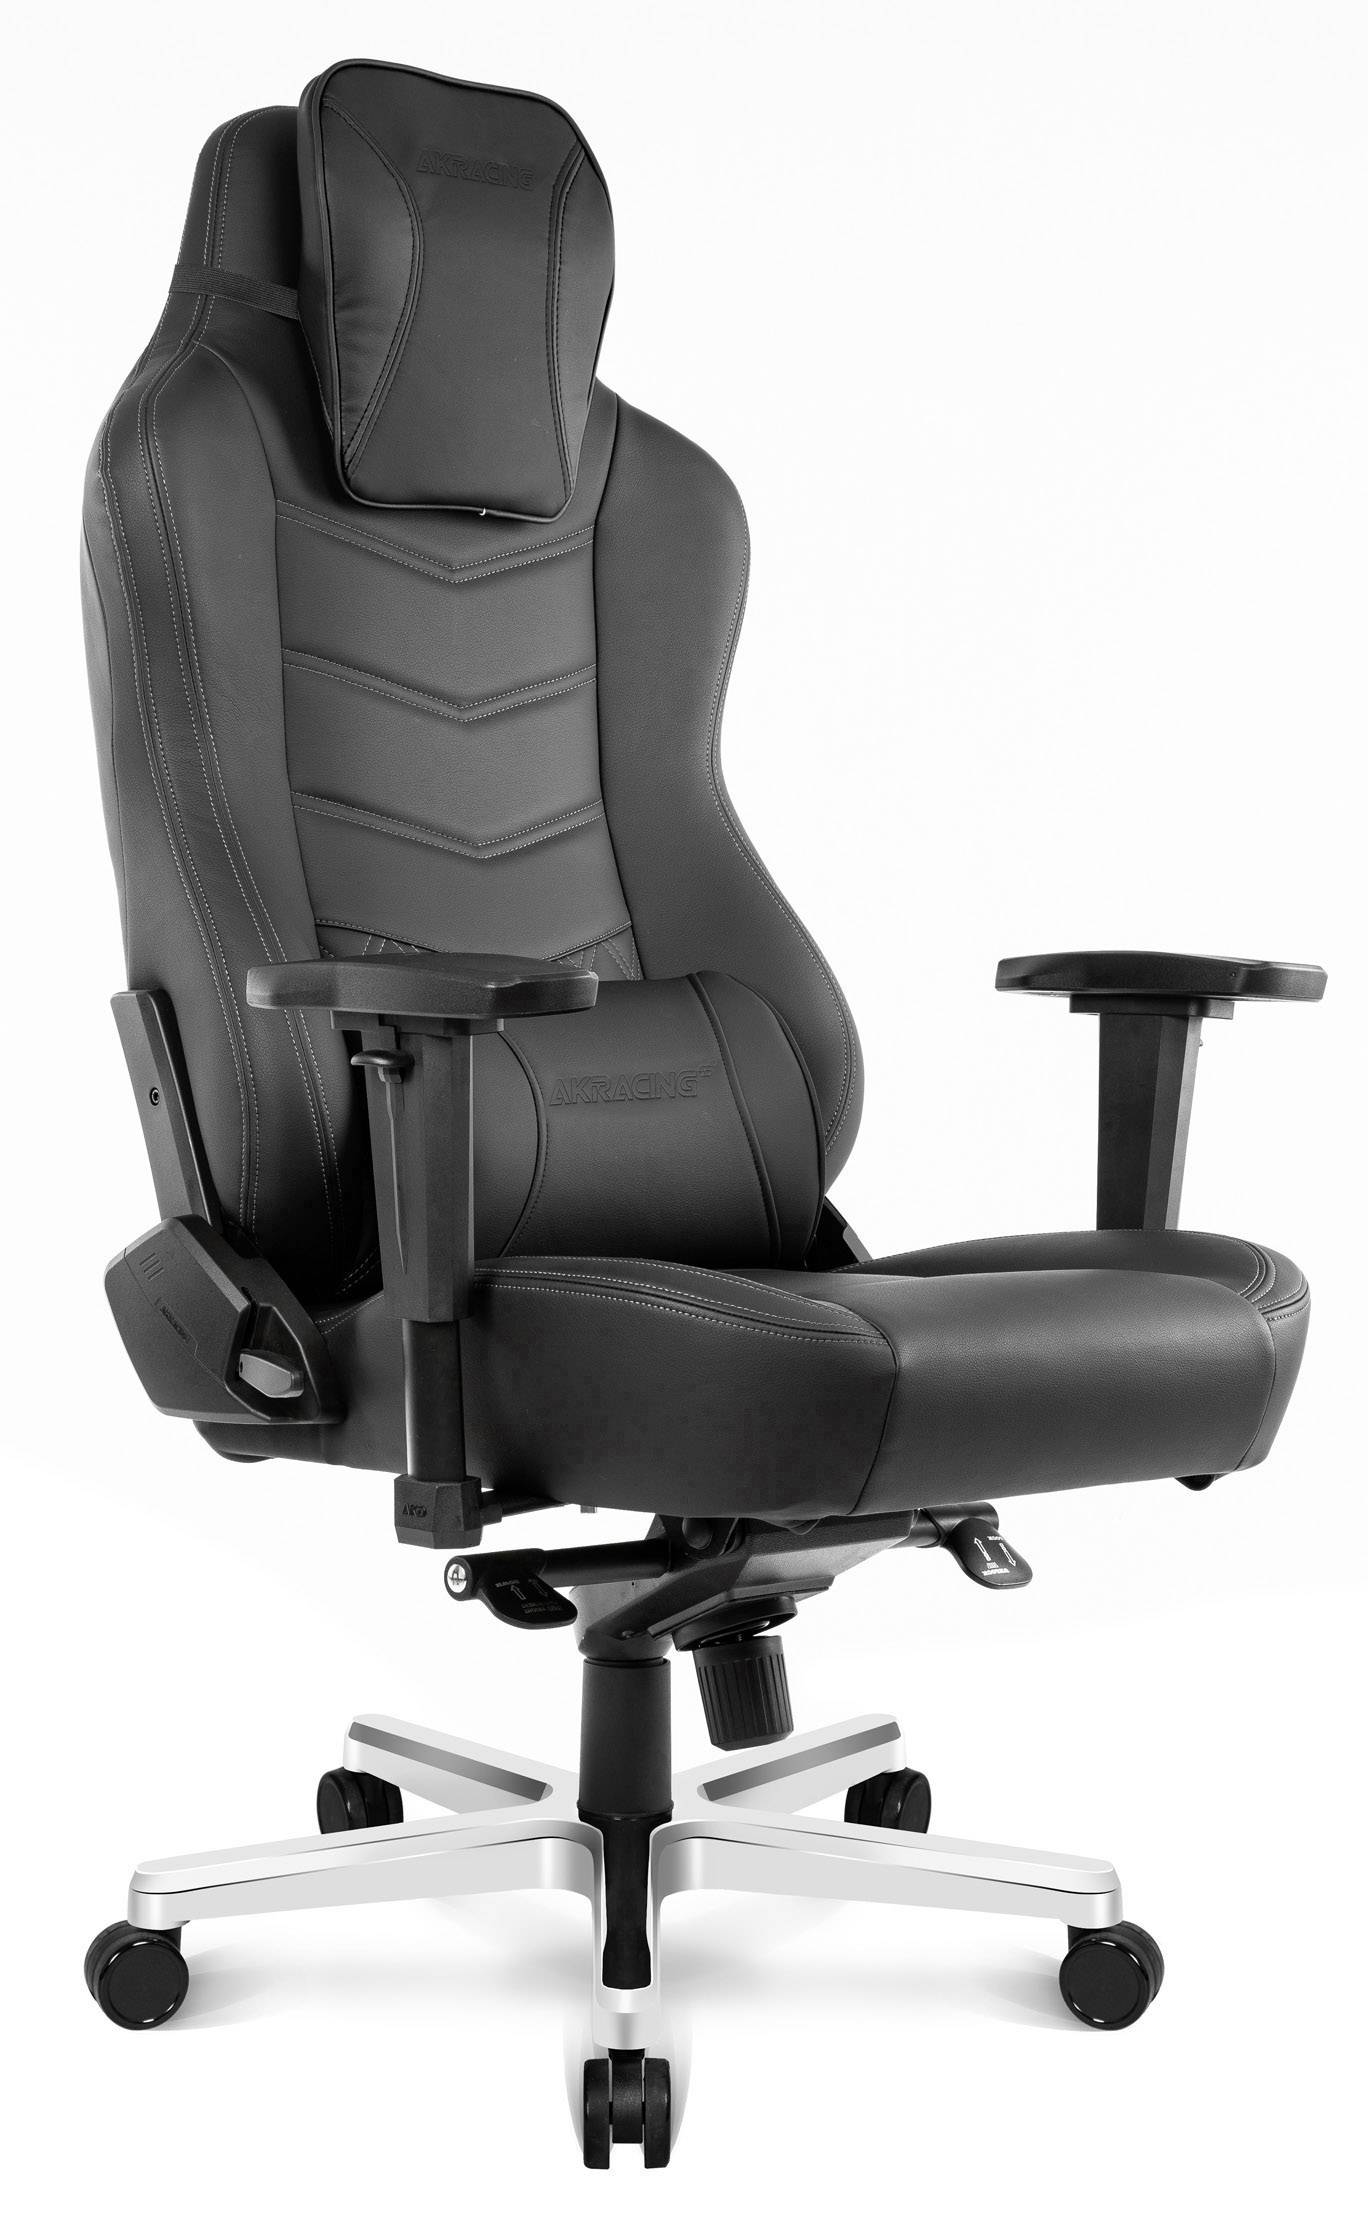 Fauteille Gamer Akracing Office Deluxe Gaming Stoel